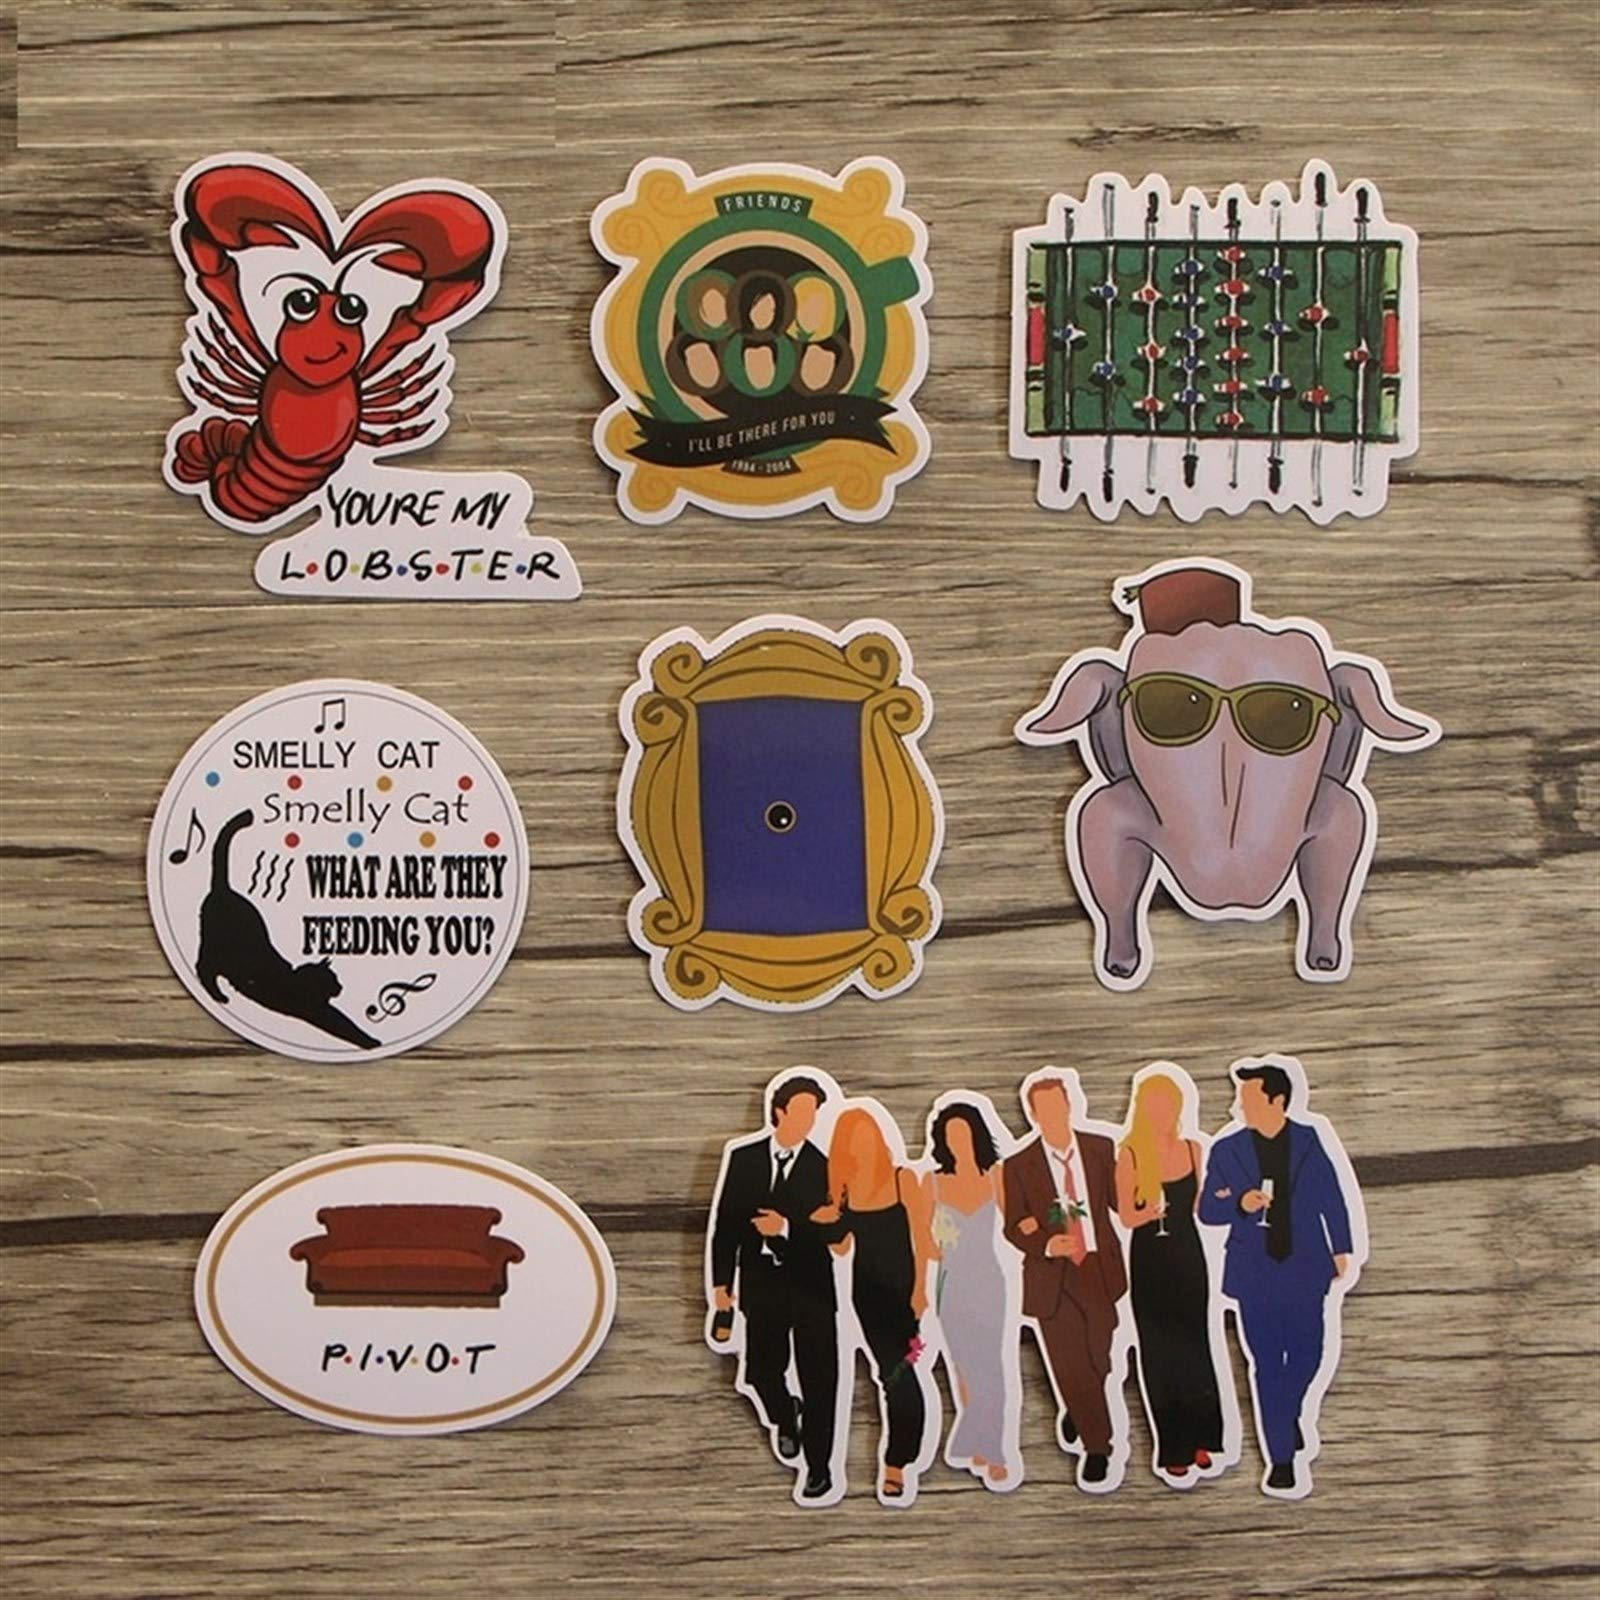 Your store 33pcs Friends tv Show Funny Creative Badges DIY Decorative Stickers Cartoon PC Wall Notebook Phone Home Garden by Your store (Image #4)